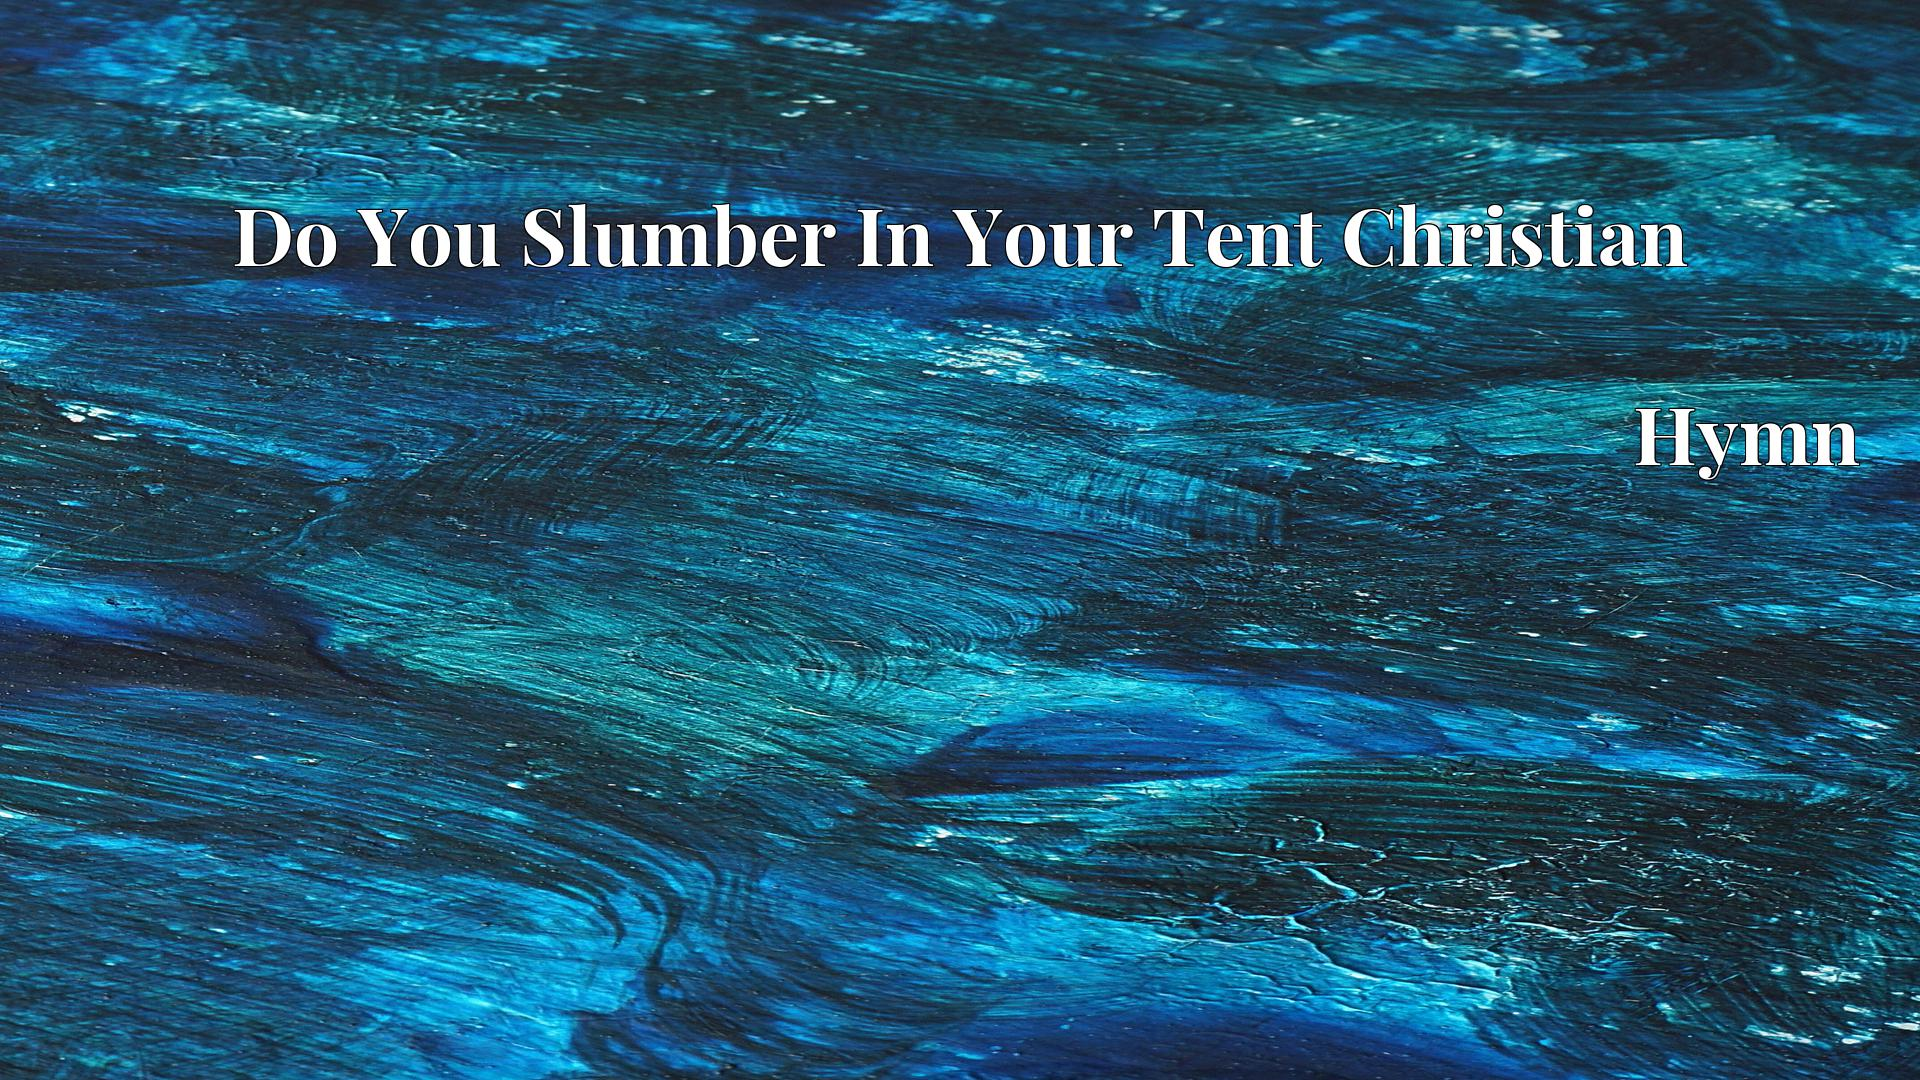 Do You Slumber In Your Tent Christian - Hymn